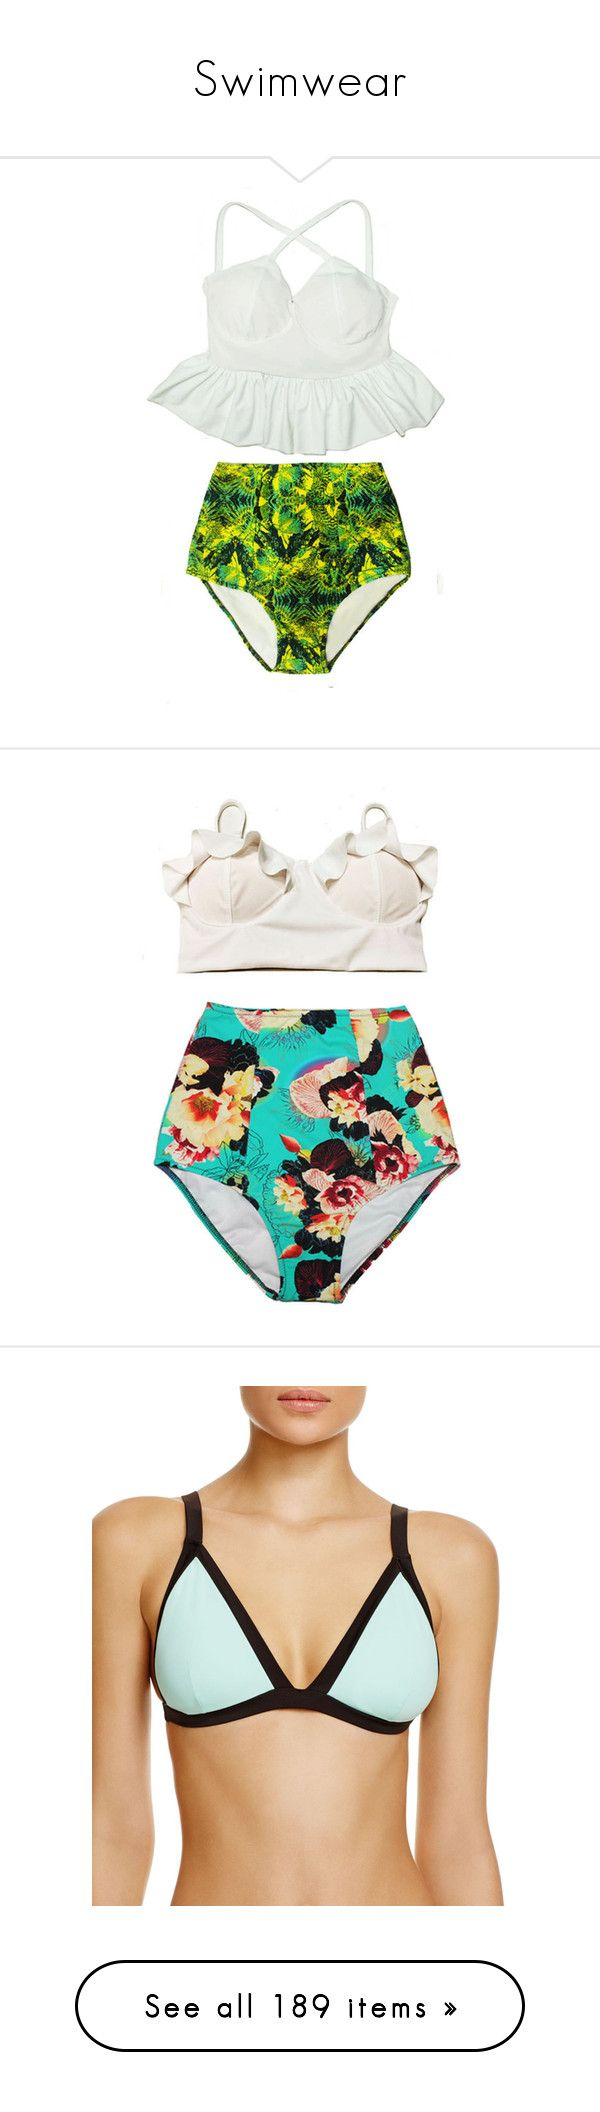 """Swimwear"" by jessie-makes-outfits on Polyvore featuring swimwear, bikinis, silver, women's clothing, retro bathing suits, peplum tankini swimsuit, white high waisted bikini, tankini bathing suits, high-waisted bikinis and high waisted bikini"